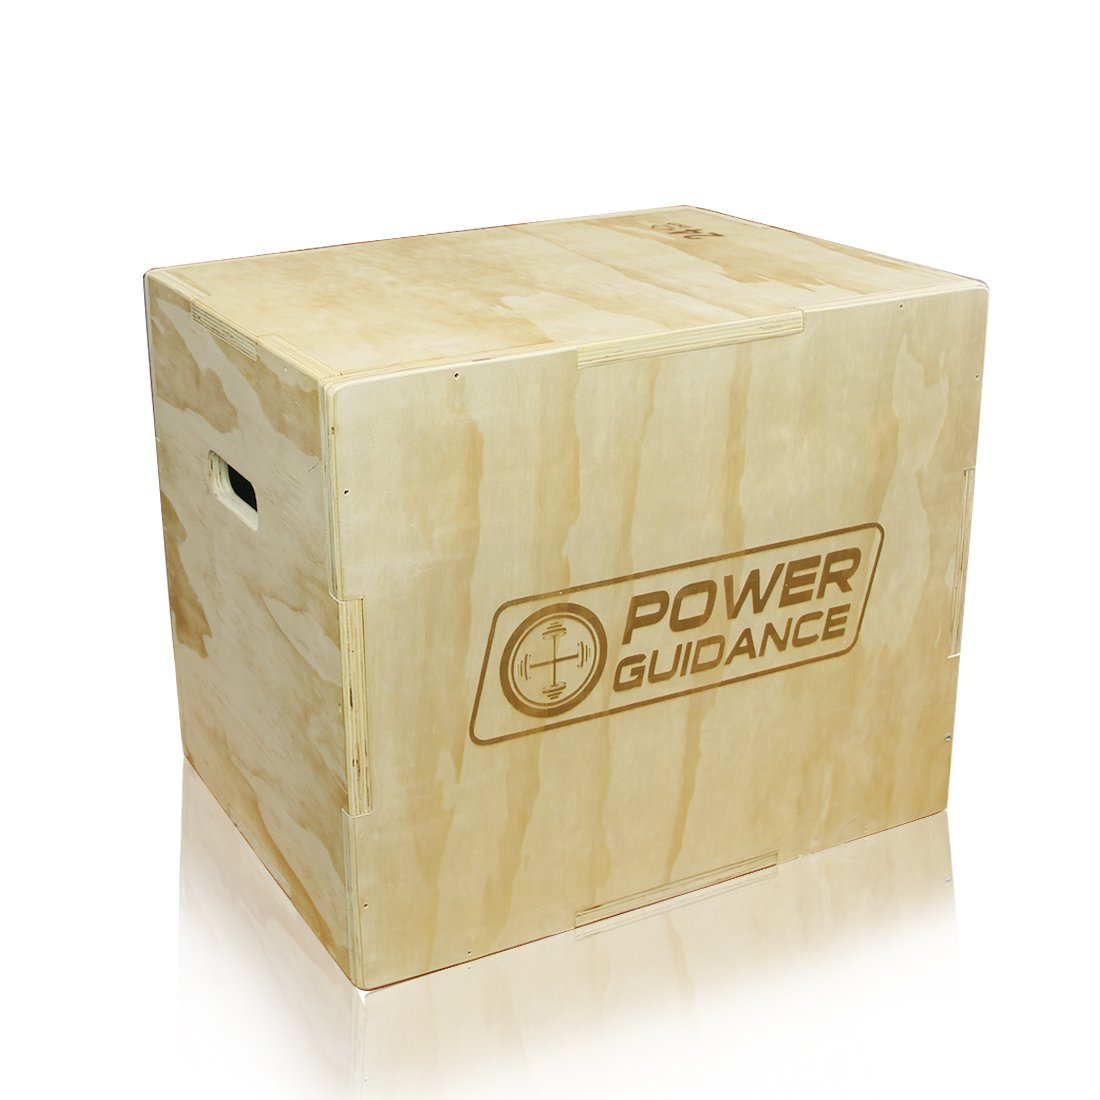 POWER GUIDANCE 3 in 1 Wood Plyometric Jump Box, Plyo Box for Jump Training and Conditioning - 30''/24''/20'', 24''/20''/18'', 16''/14''/12''